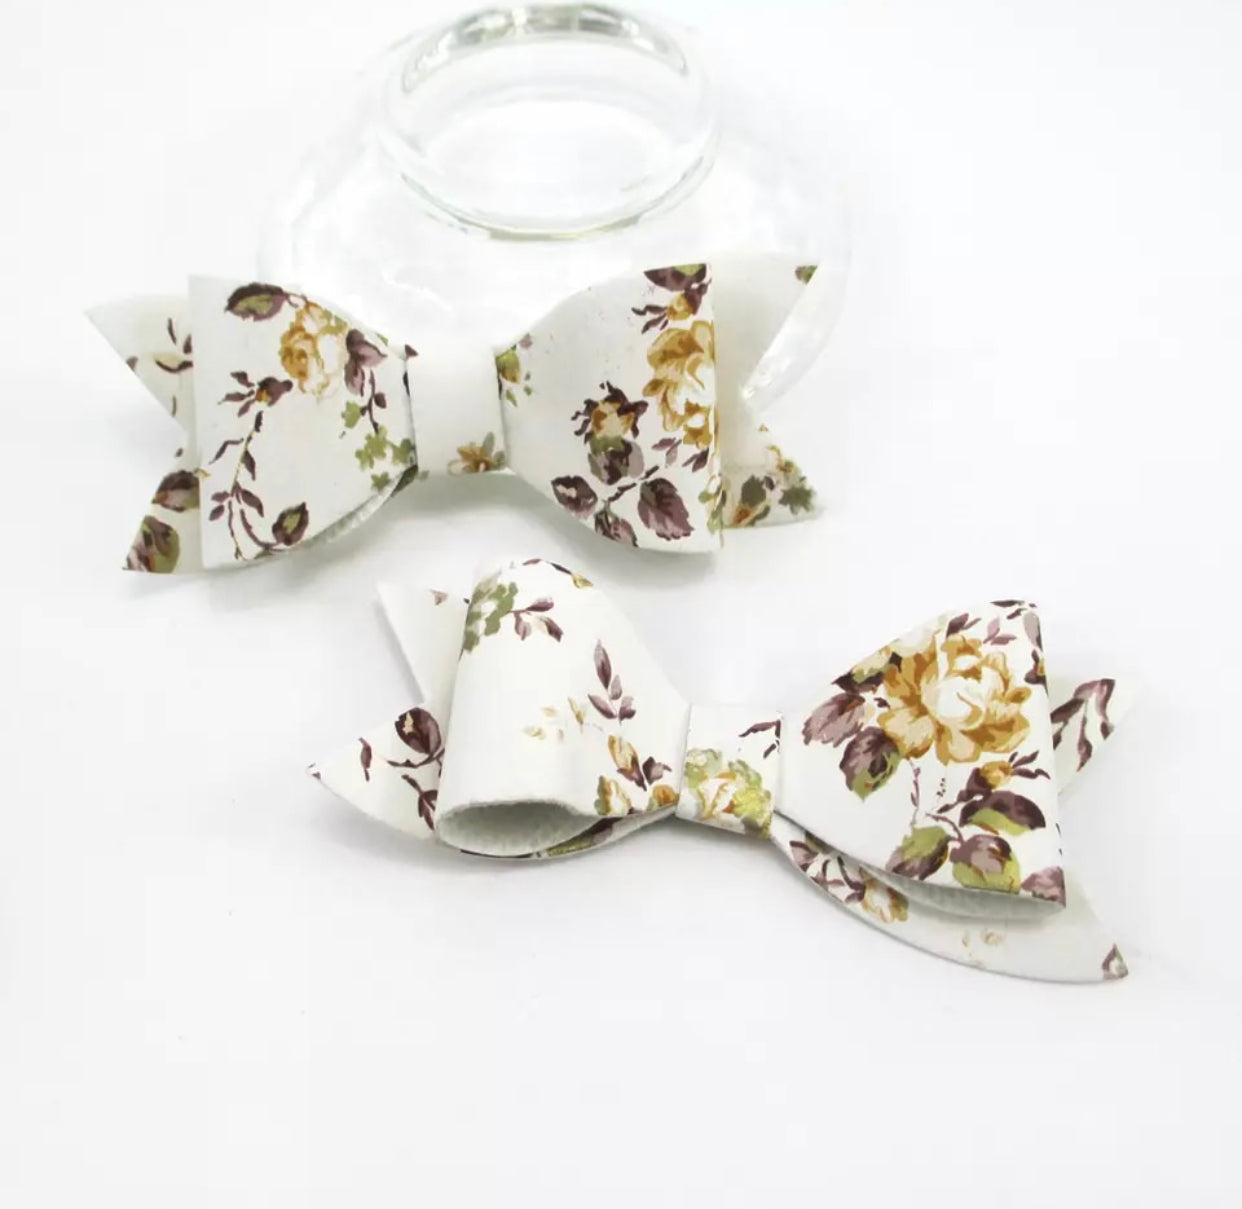 Faux Leather Bow - Gold Floral on White - shabbyflowers.com